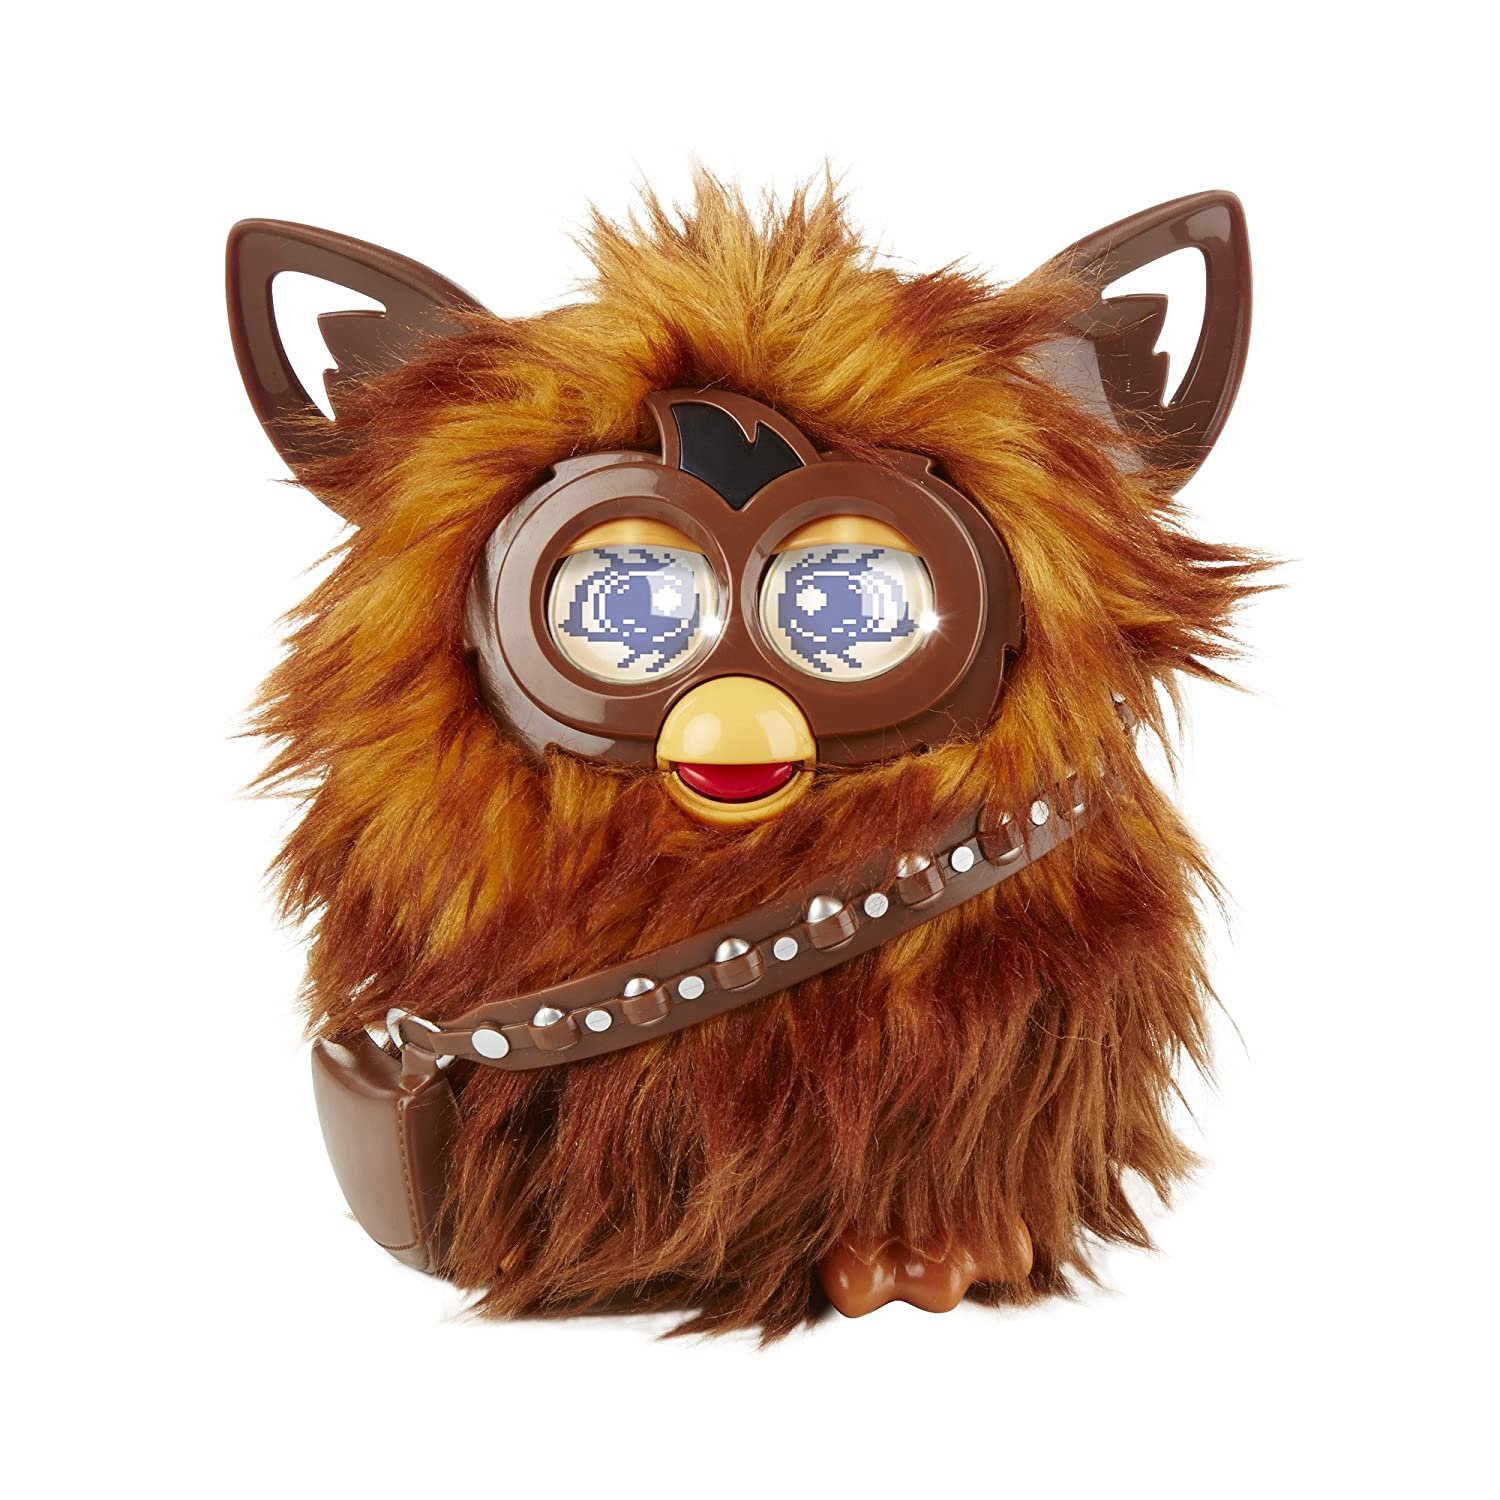 Star Wars Furbacca for Only $5...